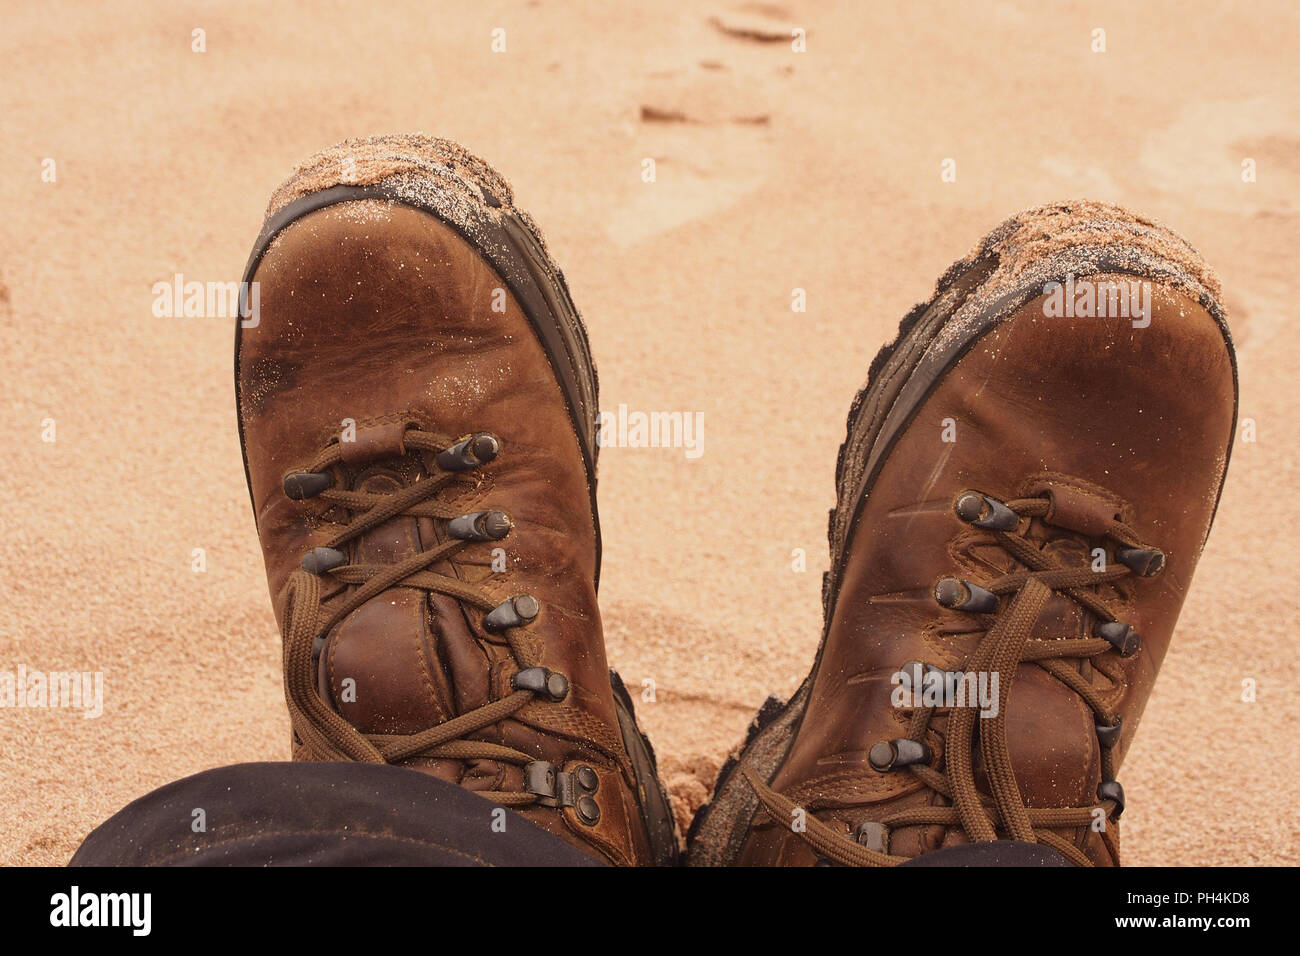 A close up of a pair of well used walking boots being worn on a sandy beach with sand stuck to the front edges - Stock Image